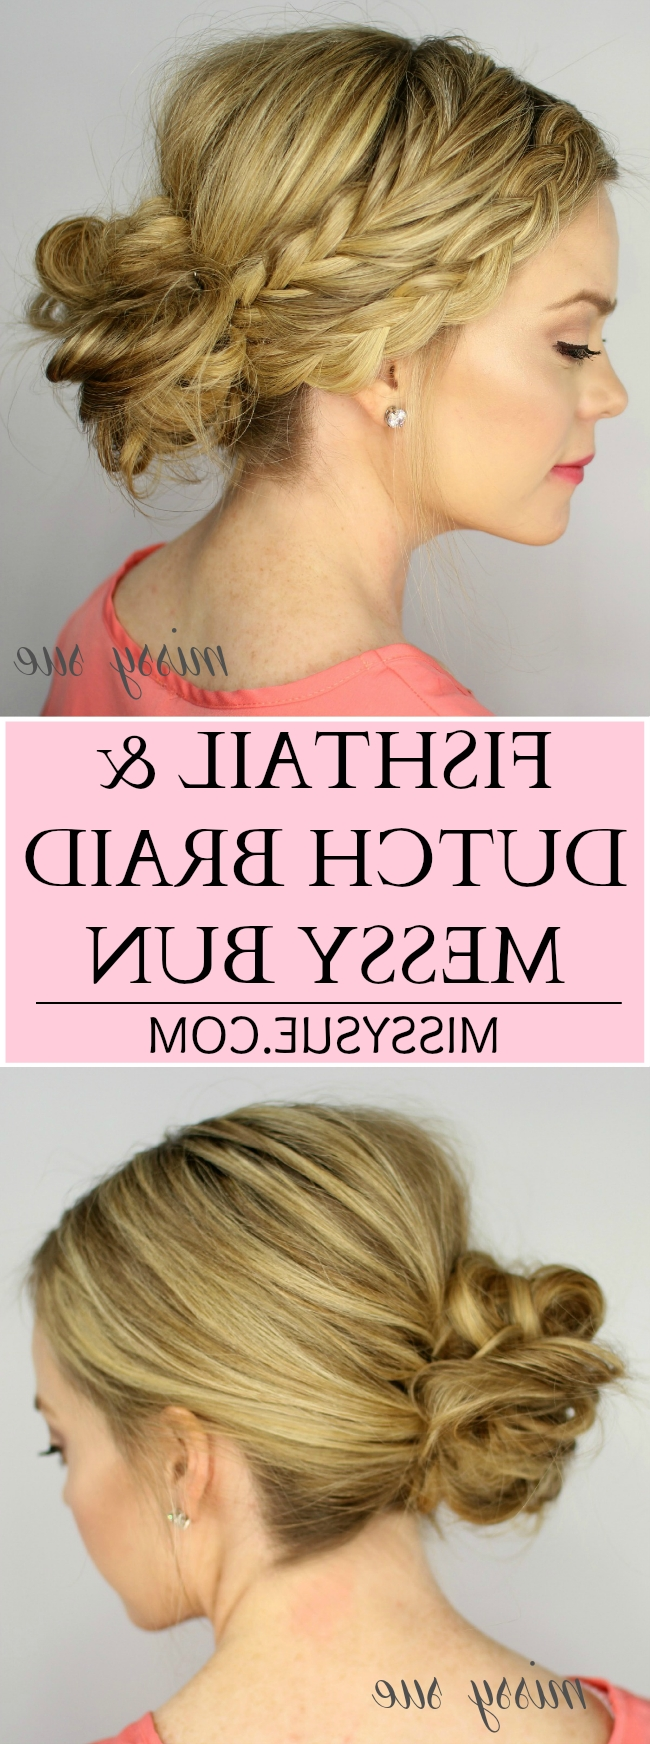 Newest Messy Ponytail Hairstyles With Side Dutch Braid Within Fishtail And Dutch Braid Messy Bun (View 16 of 20)